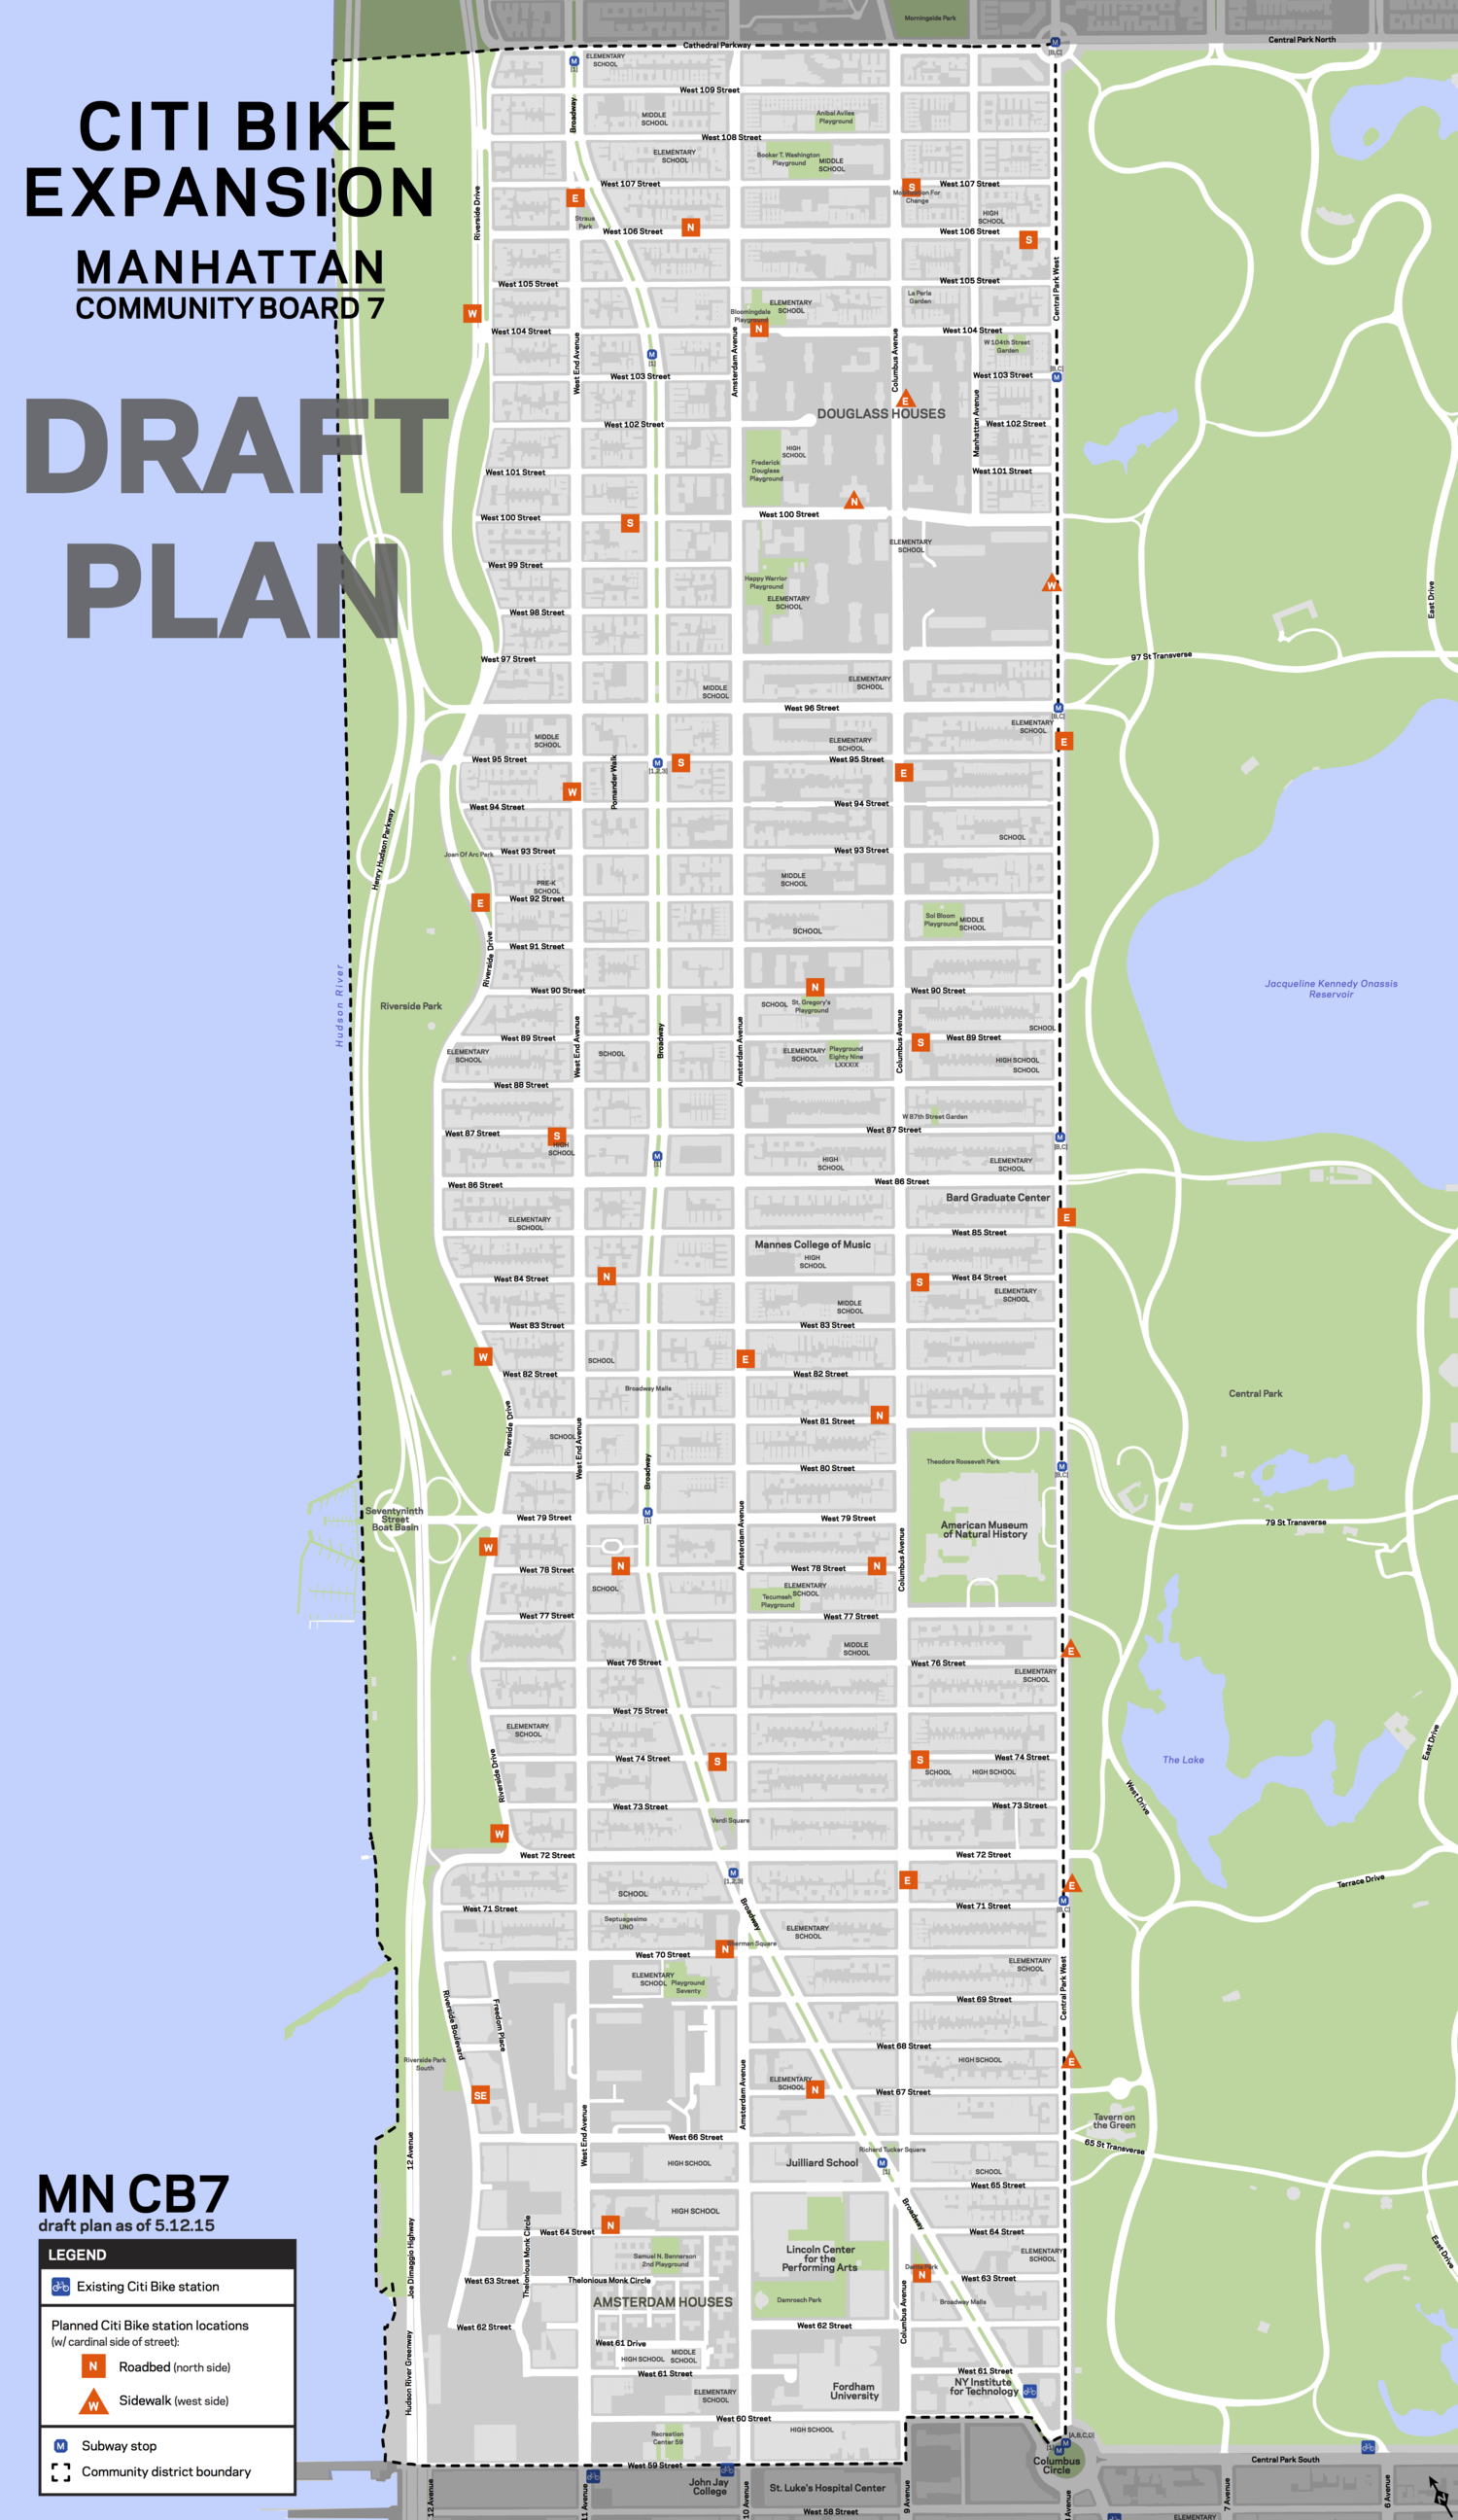 DOT is planning 39 bike-share stations between 62nd and 107th streets